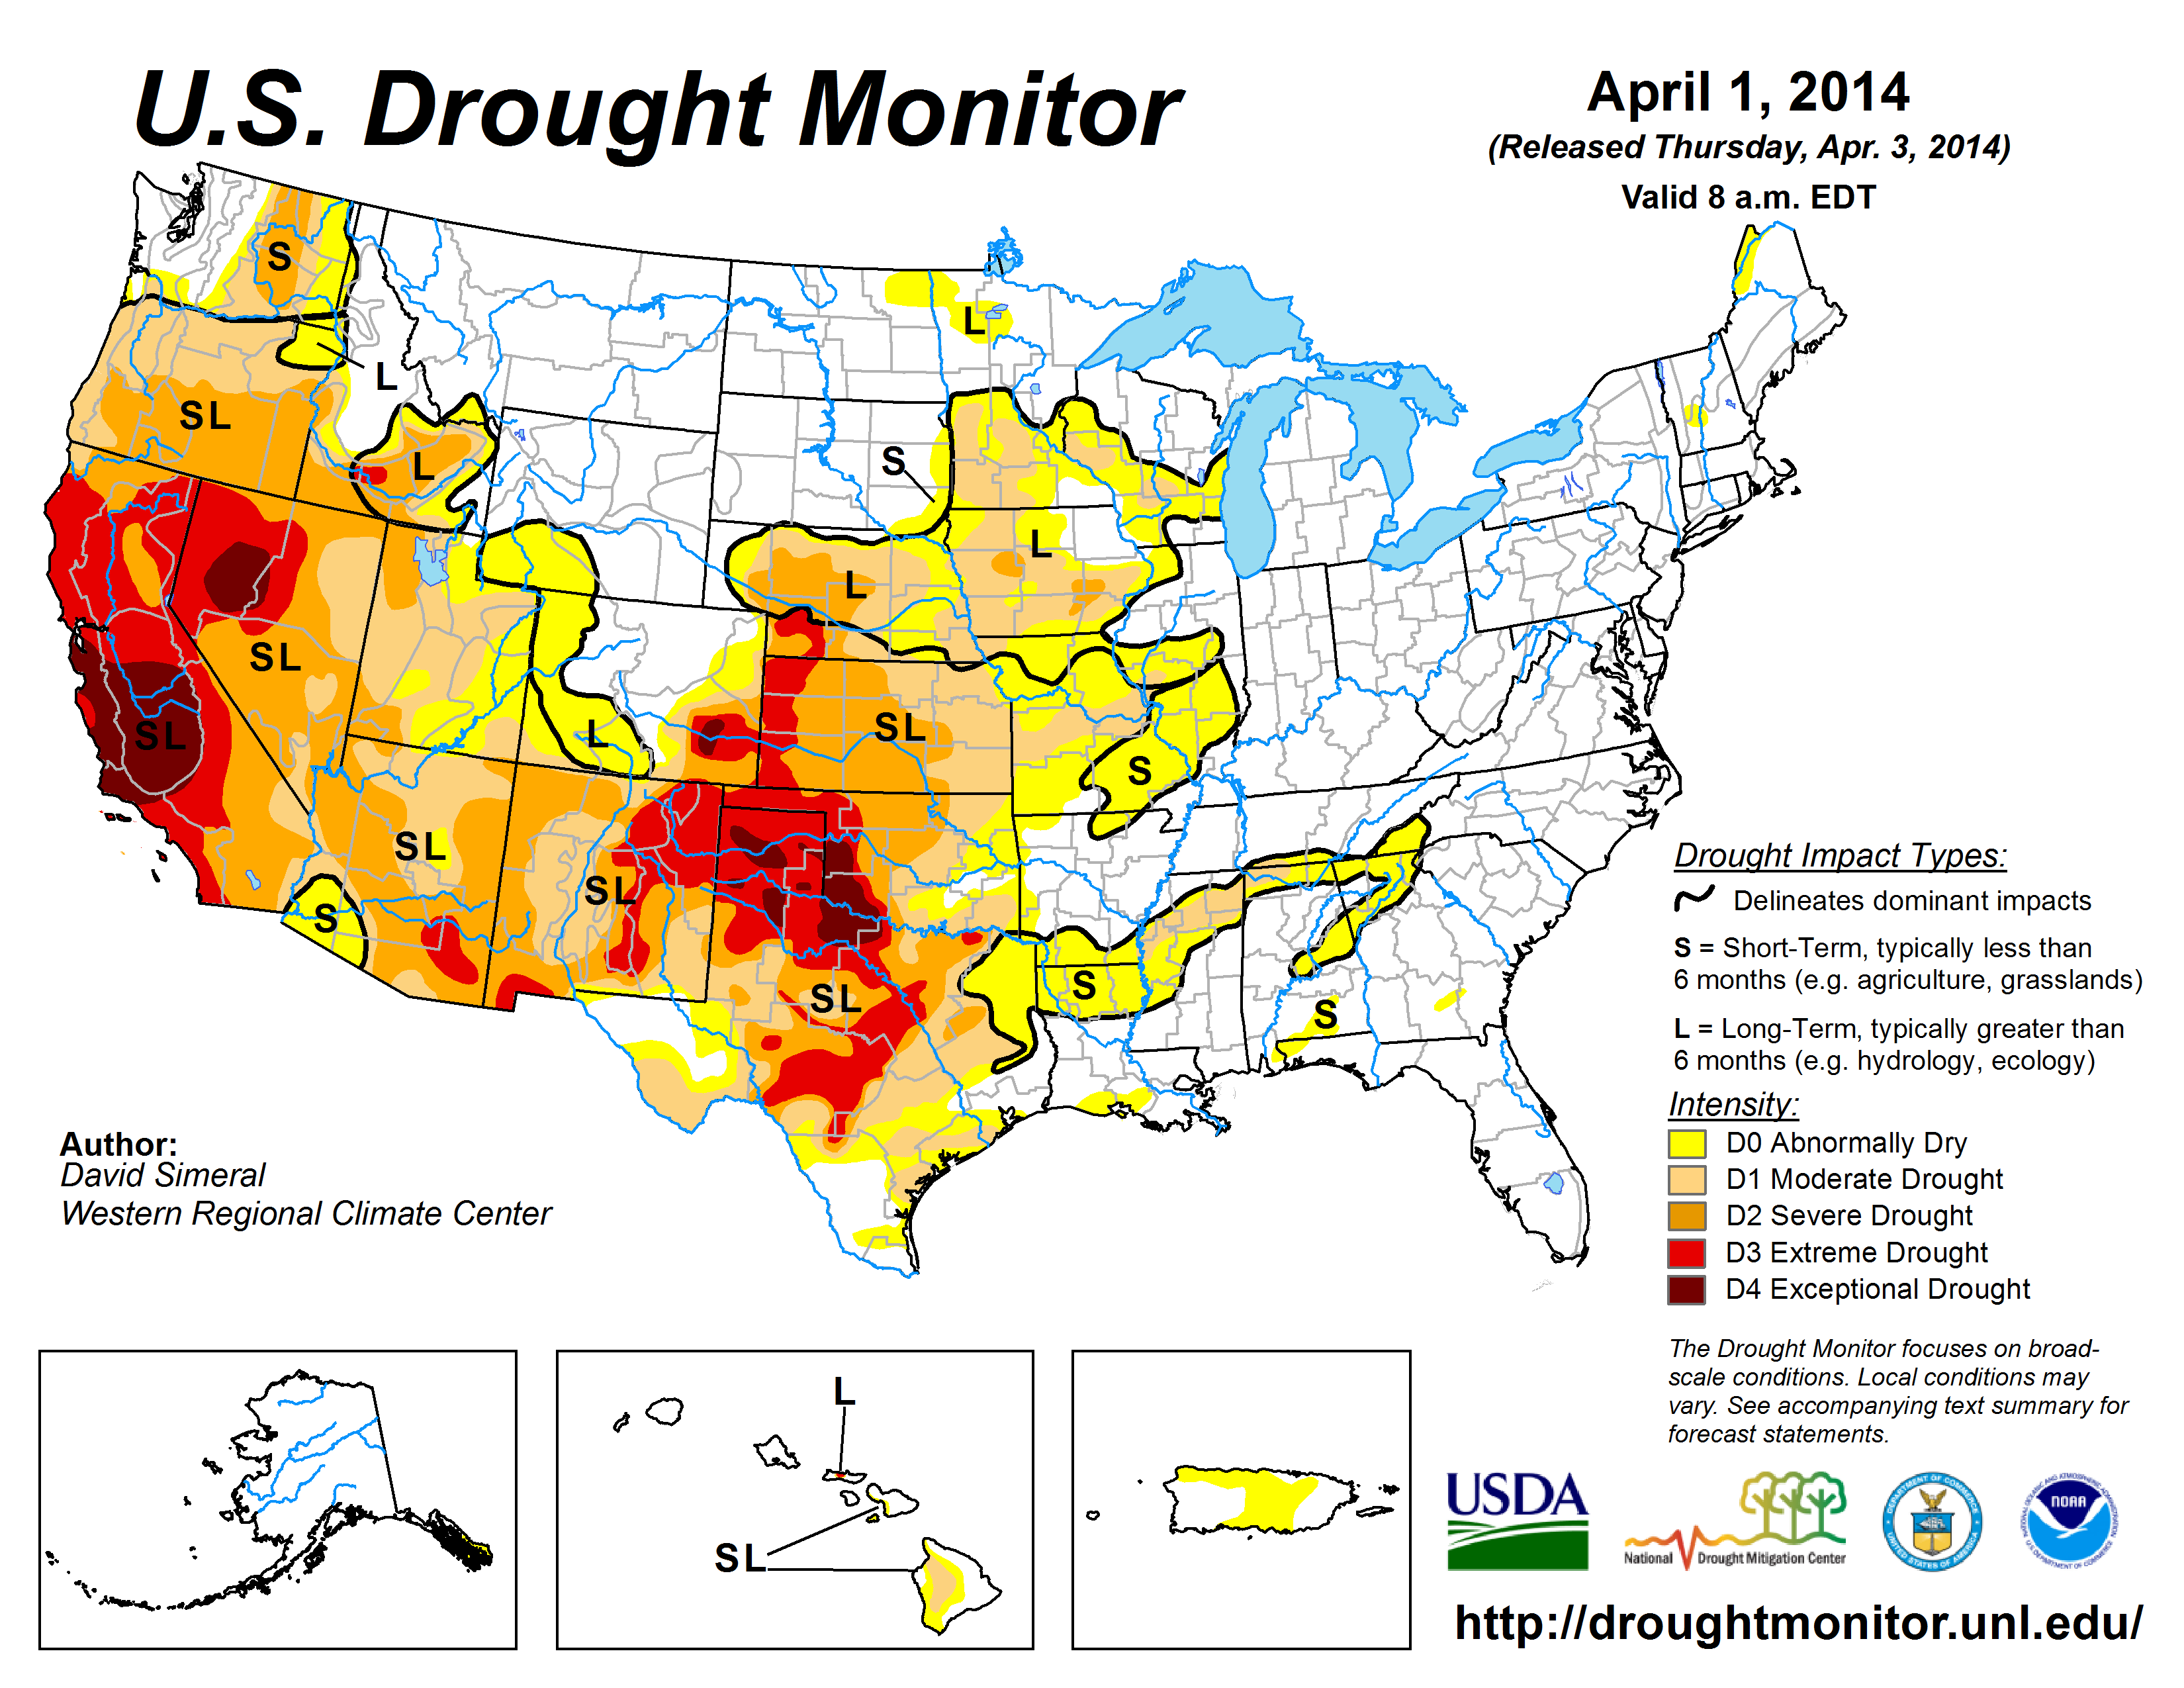 The U.S. Drought Monitor drought map valid April 1, 2014